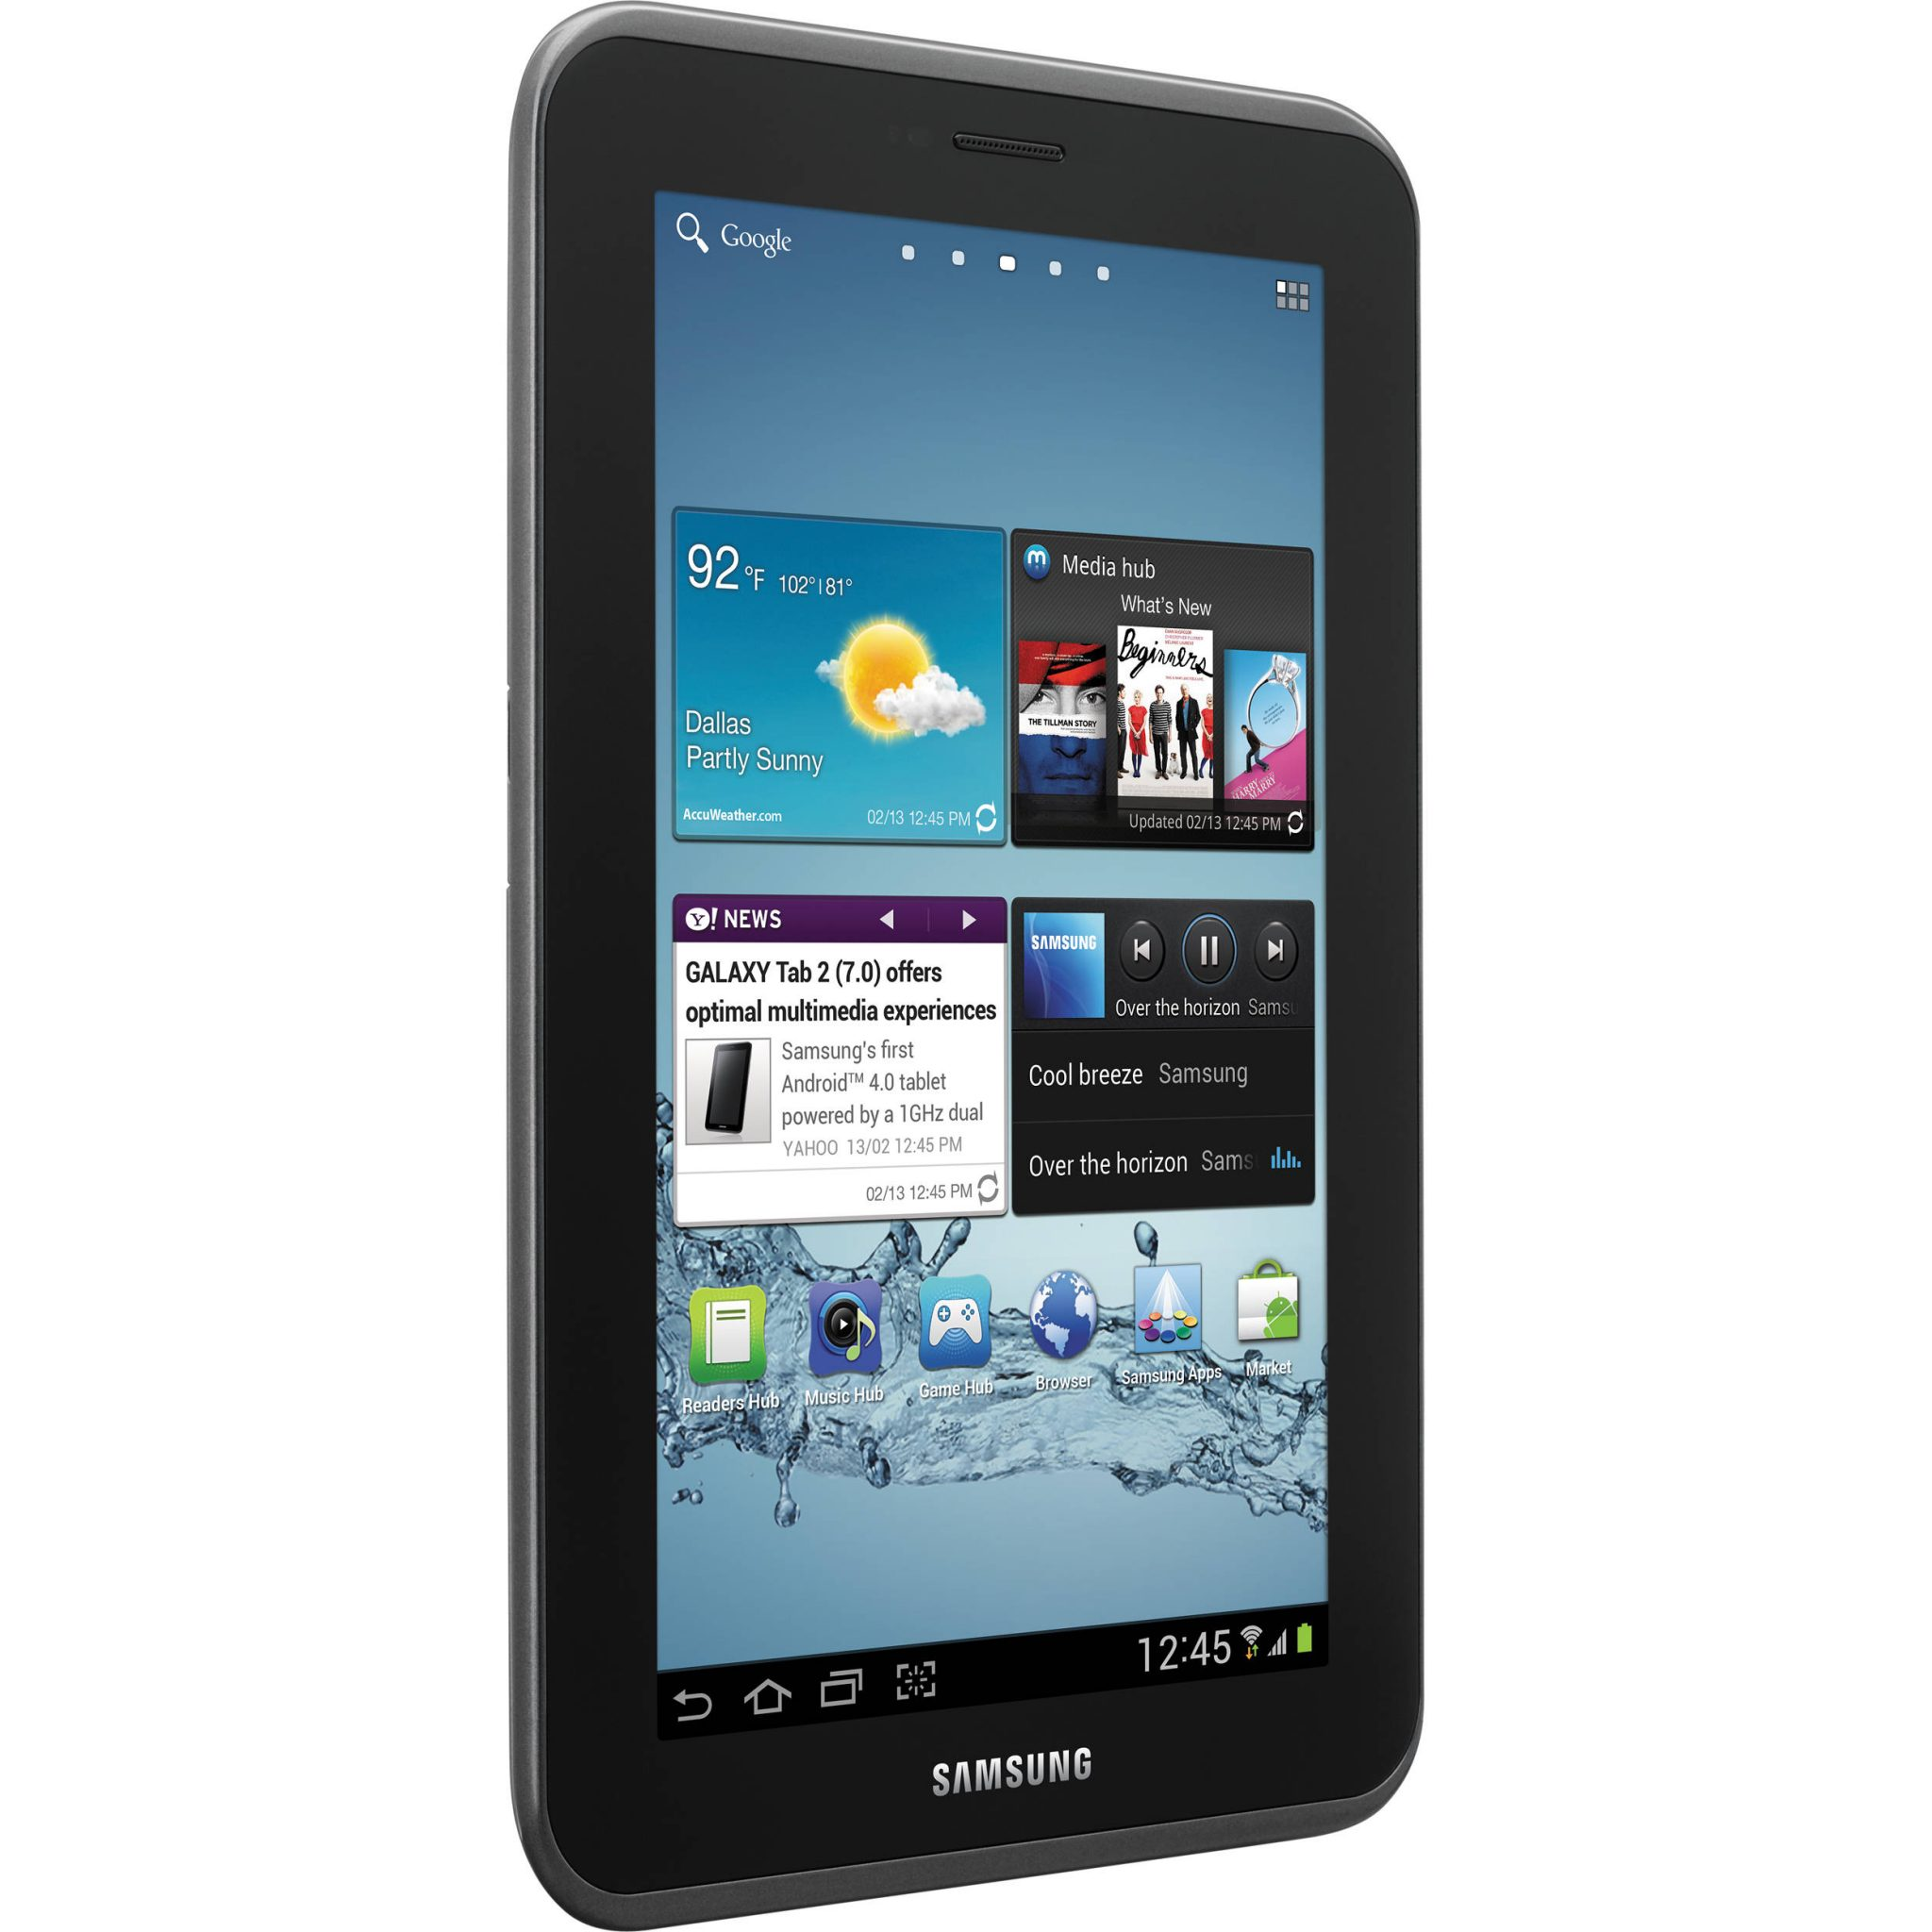 Stock Rom / Firmware Samsung Galaxy Tab 2 7.0 Wifi GT-P3113 Android 4.2.2  Jelly Bean - Stock Rom